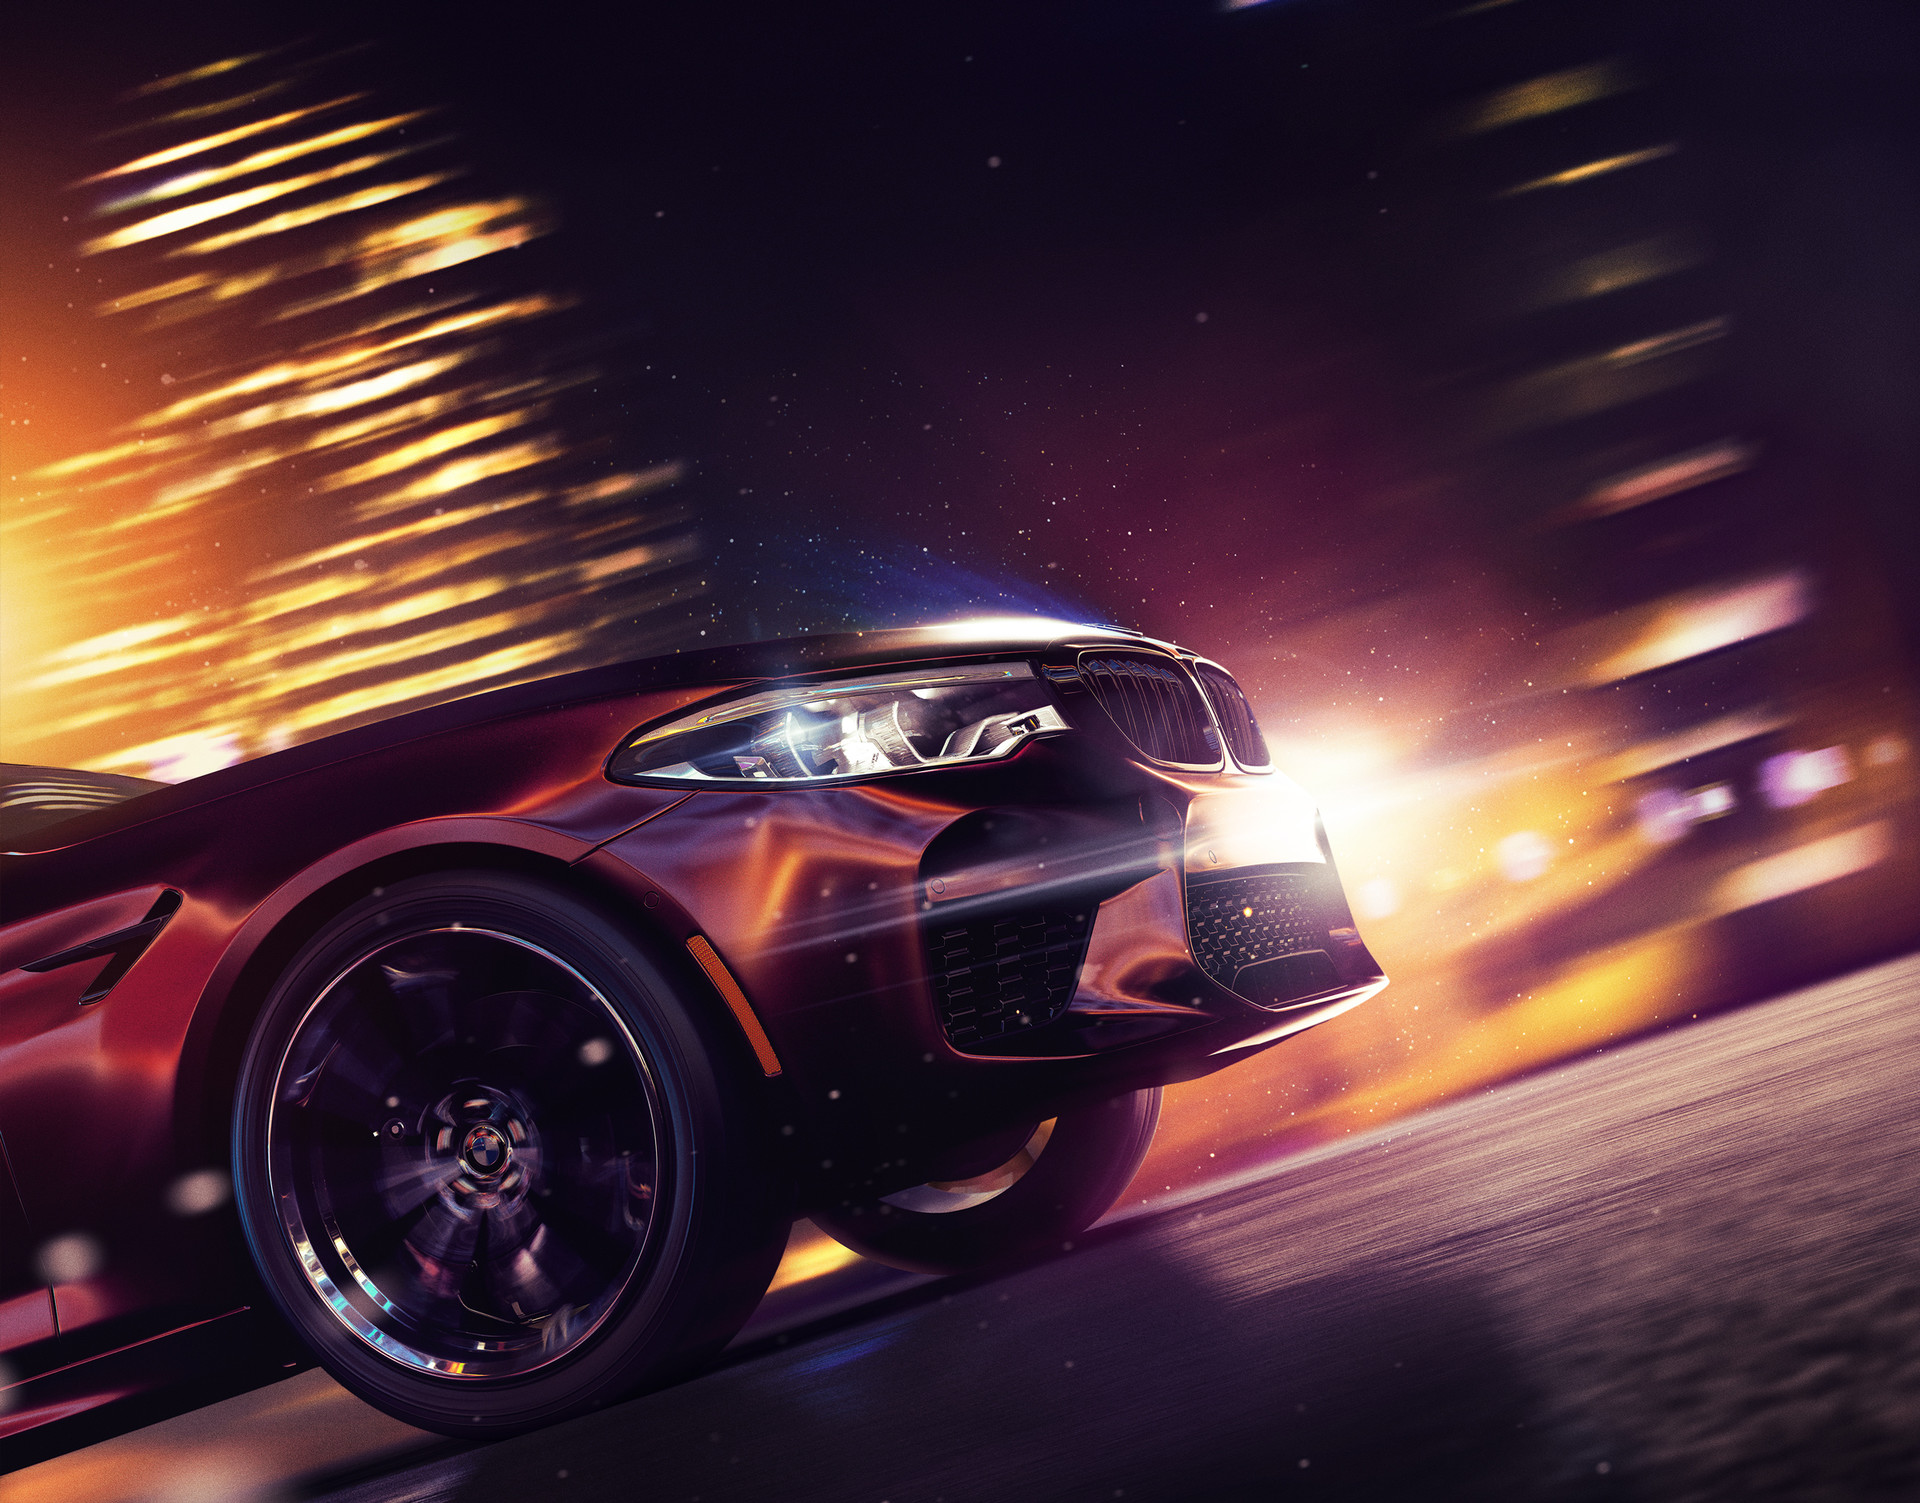 Need For Speed Payback Wallpaper: Need For Speed Payback Poster, HD Games, 4k Wallpapers